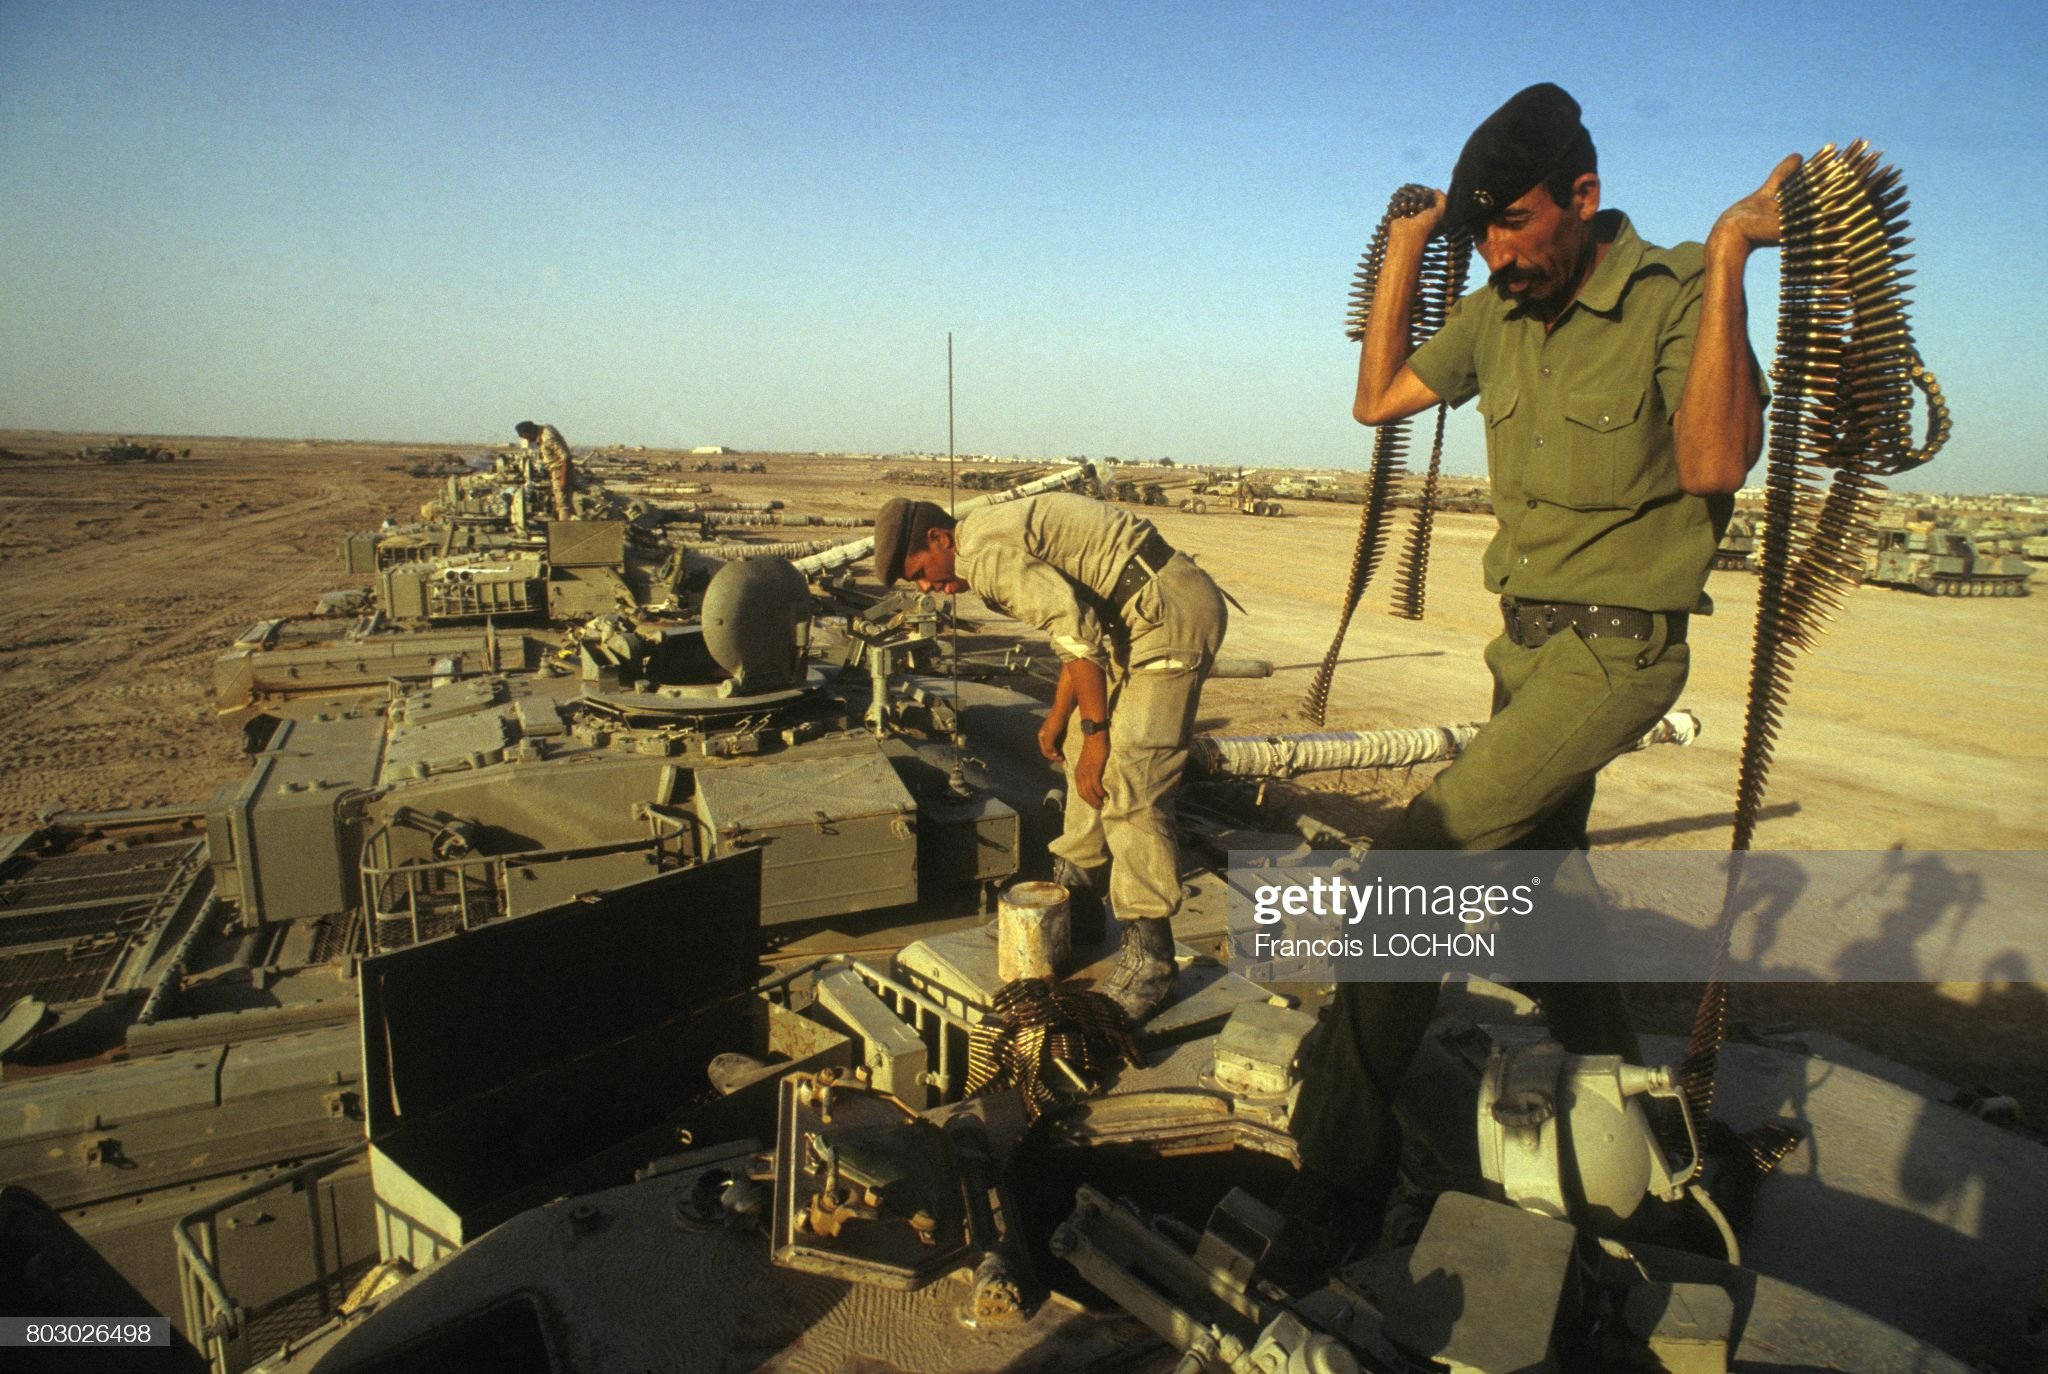 https://media.gettyimages.com/photos/iraqi-troops-seizing-tanks-from-the-iran-army-in-zubeidat-area-on-19-picture-id803026498?s=2048x2048